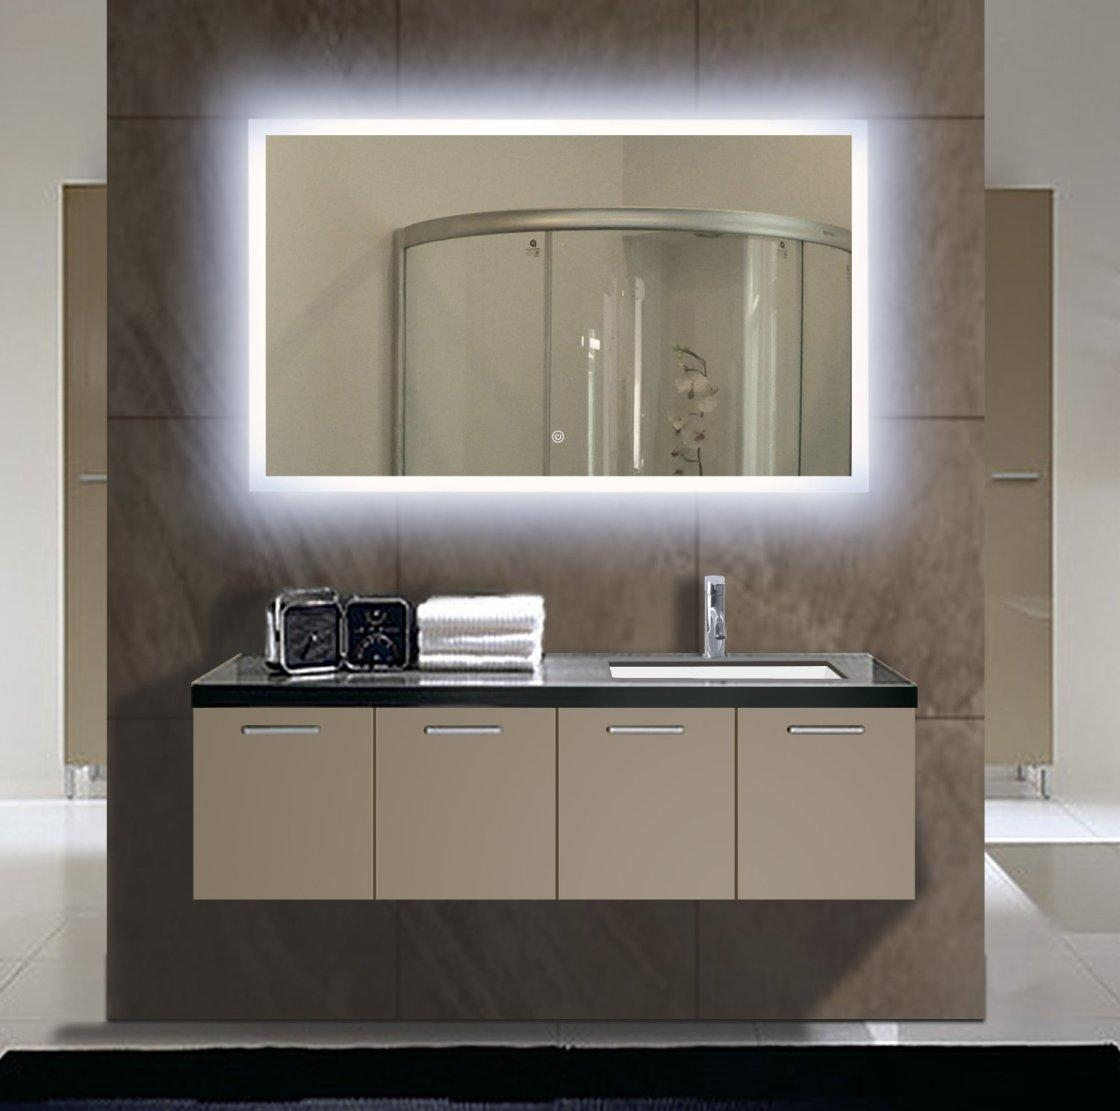 Vanity Wall Mirrors – Wall Shelves For Bathroom Wall Mirrors With Lights (Image 19 of 20)